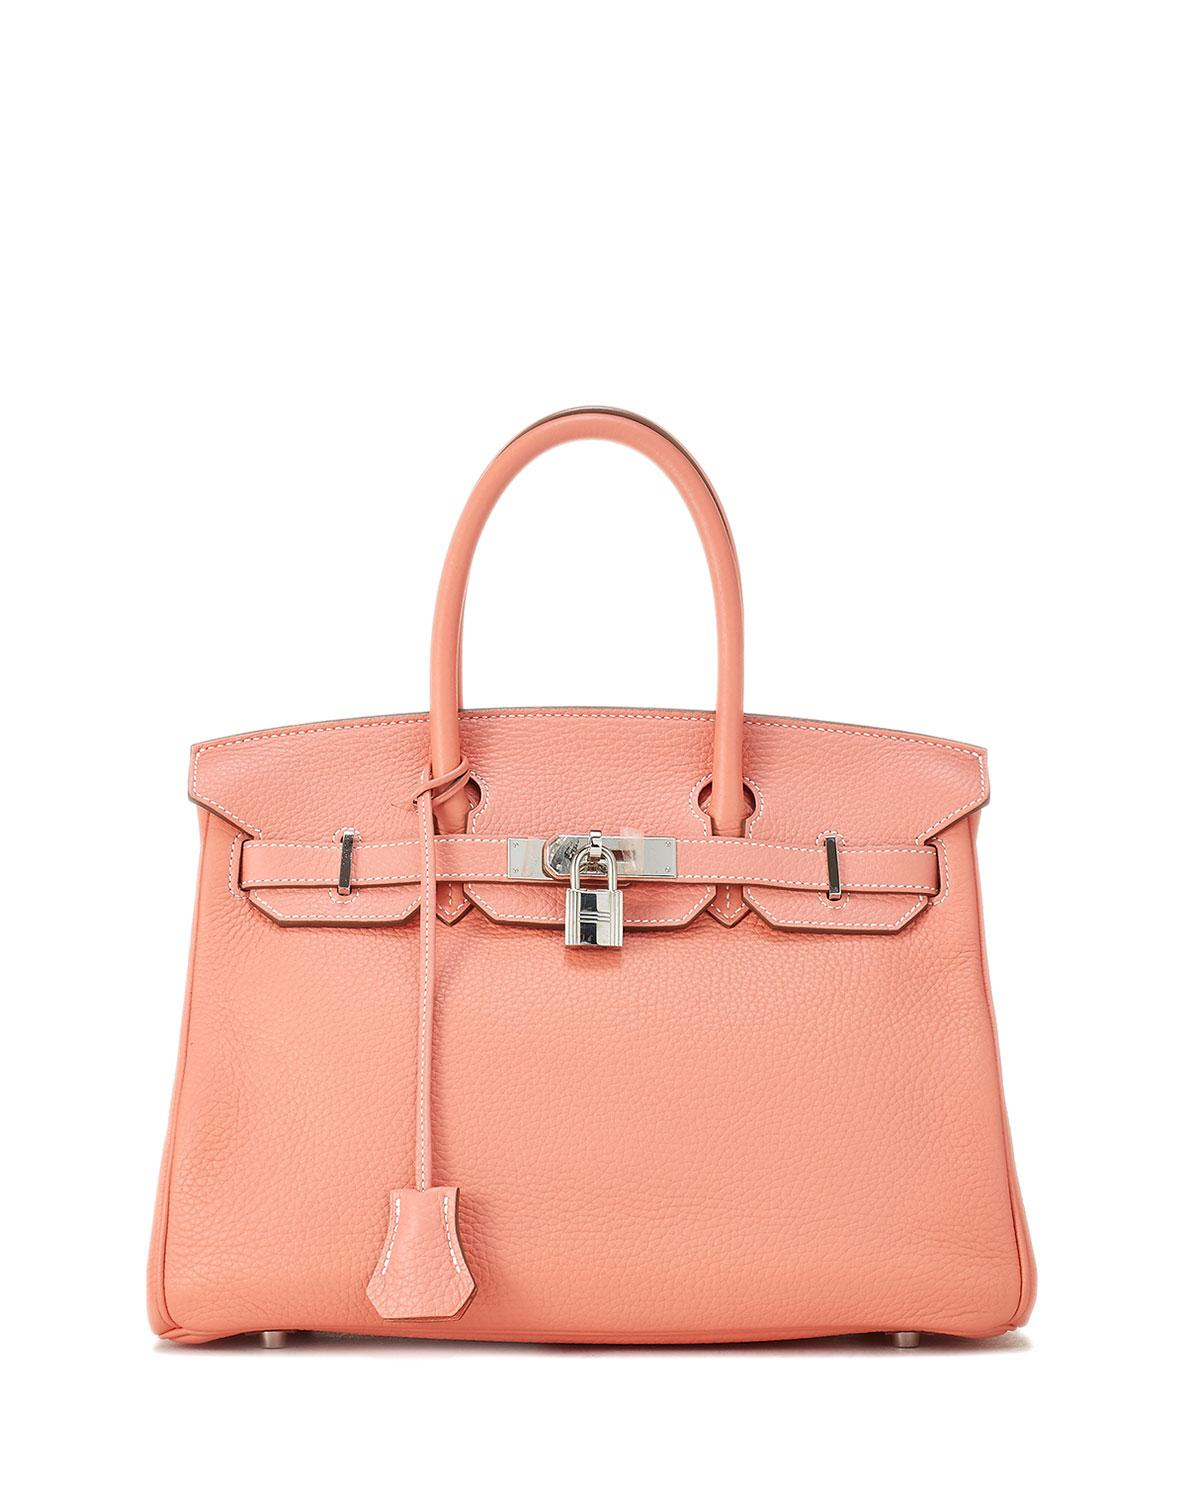 Hermes Birkin 30 Calfskin Satchel Bag In Orange